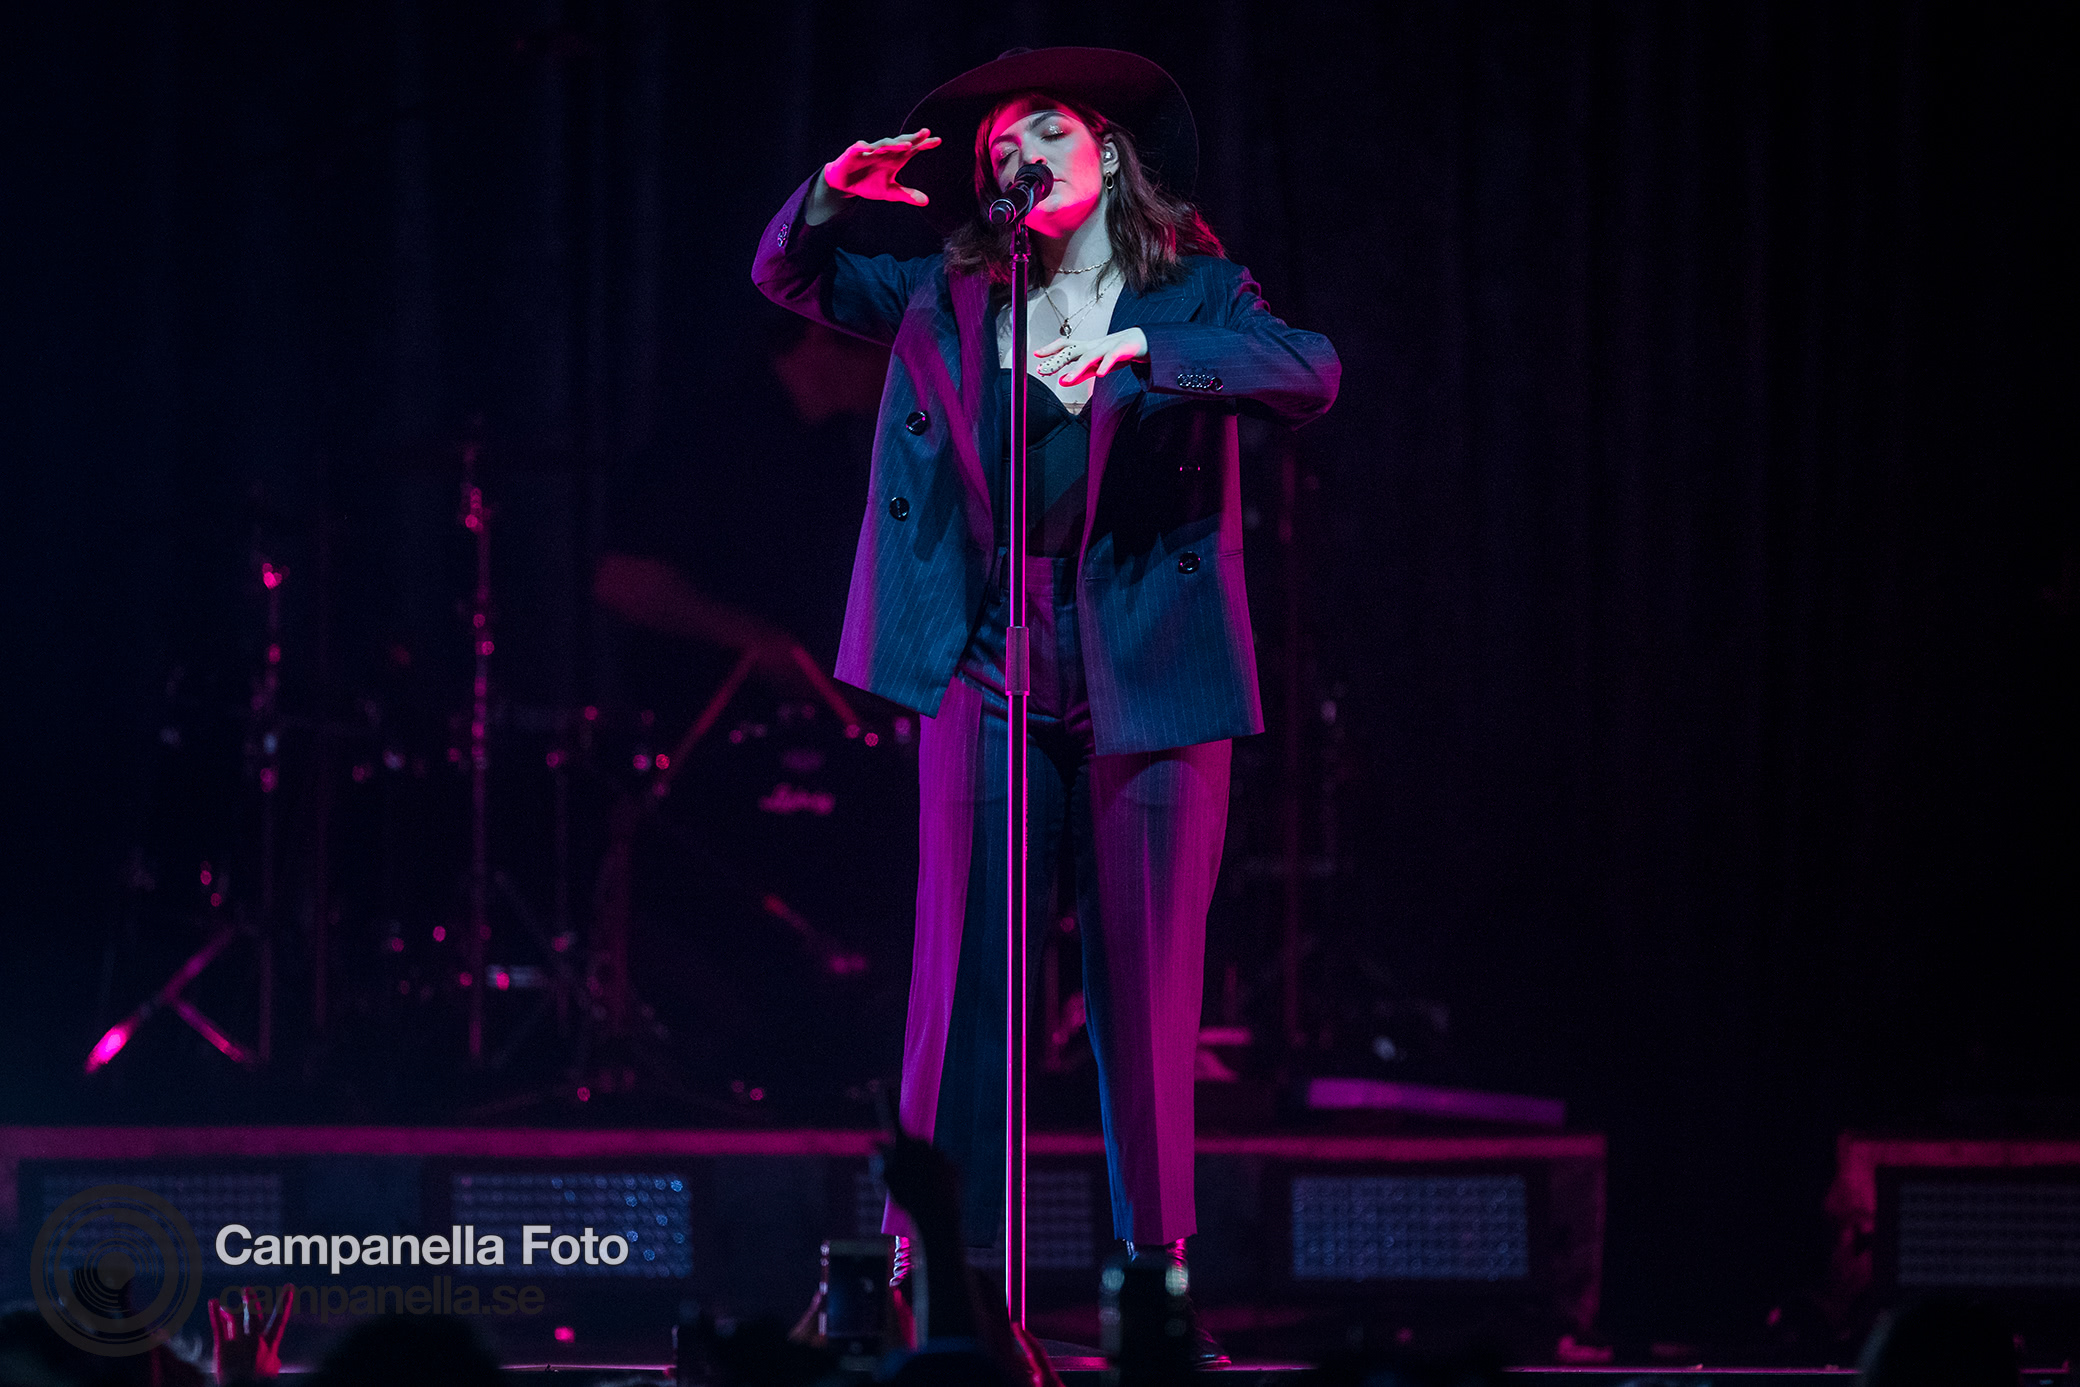 Lorde performs at Annexet in Stockholm - Michael Campanella Photography